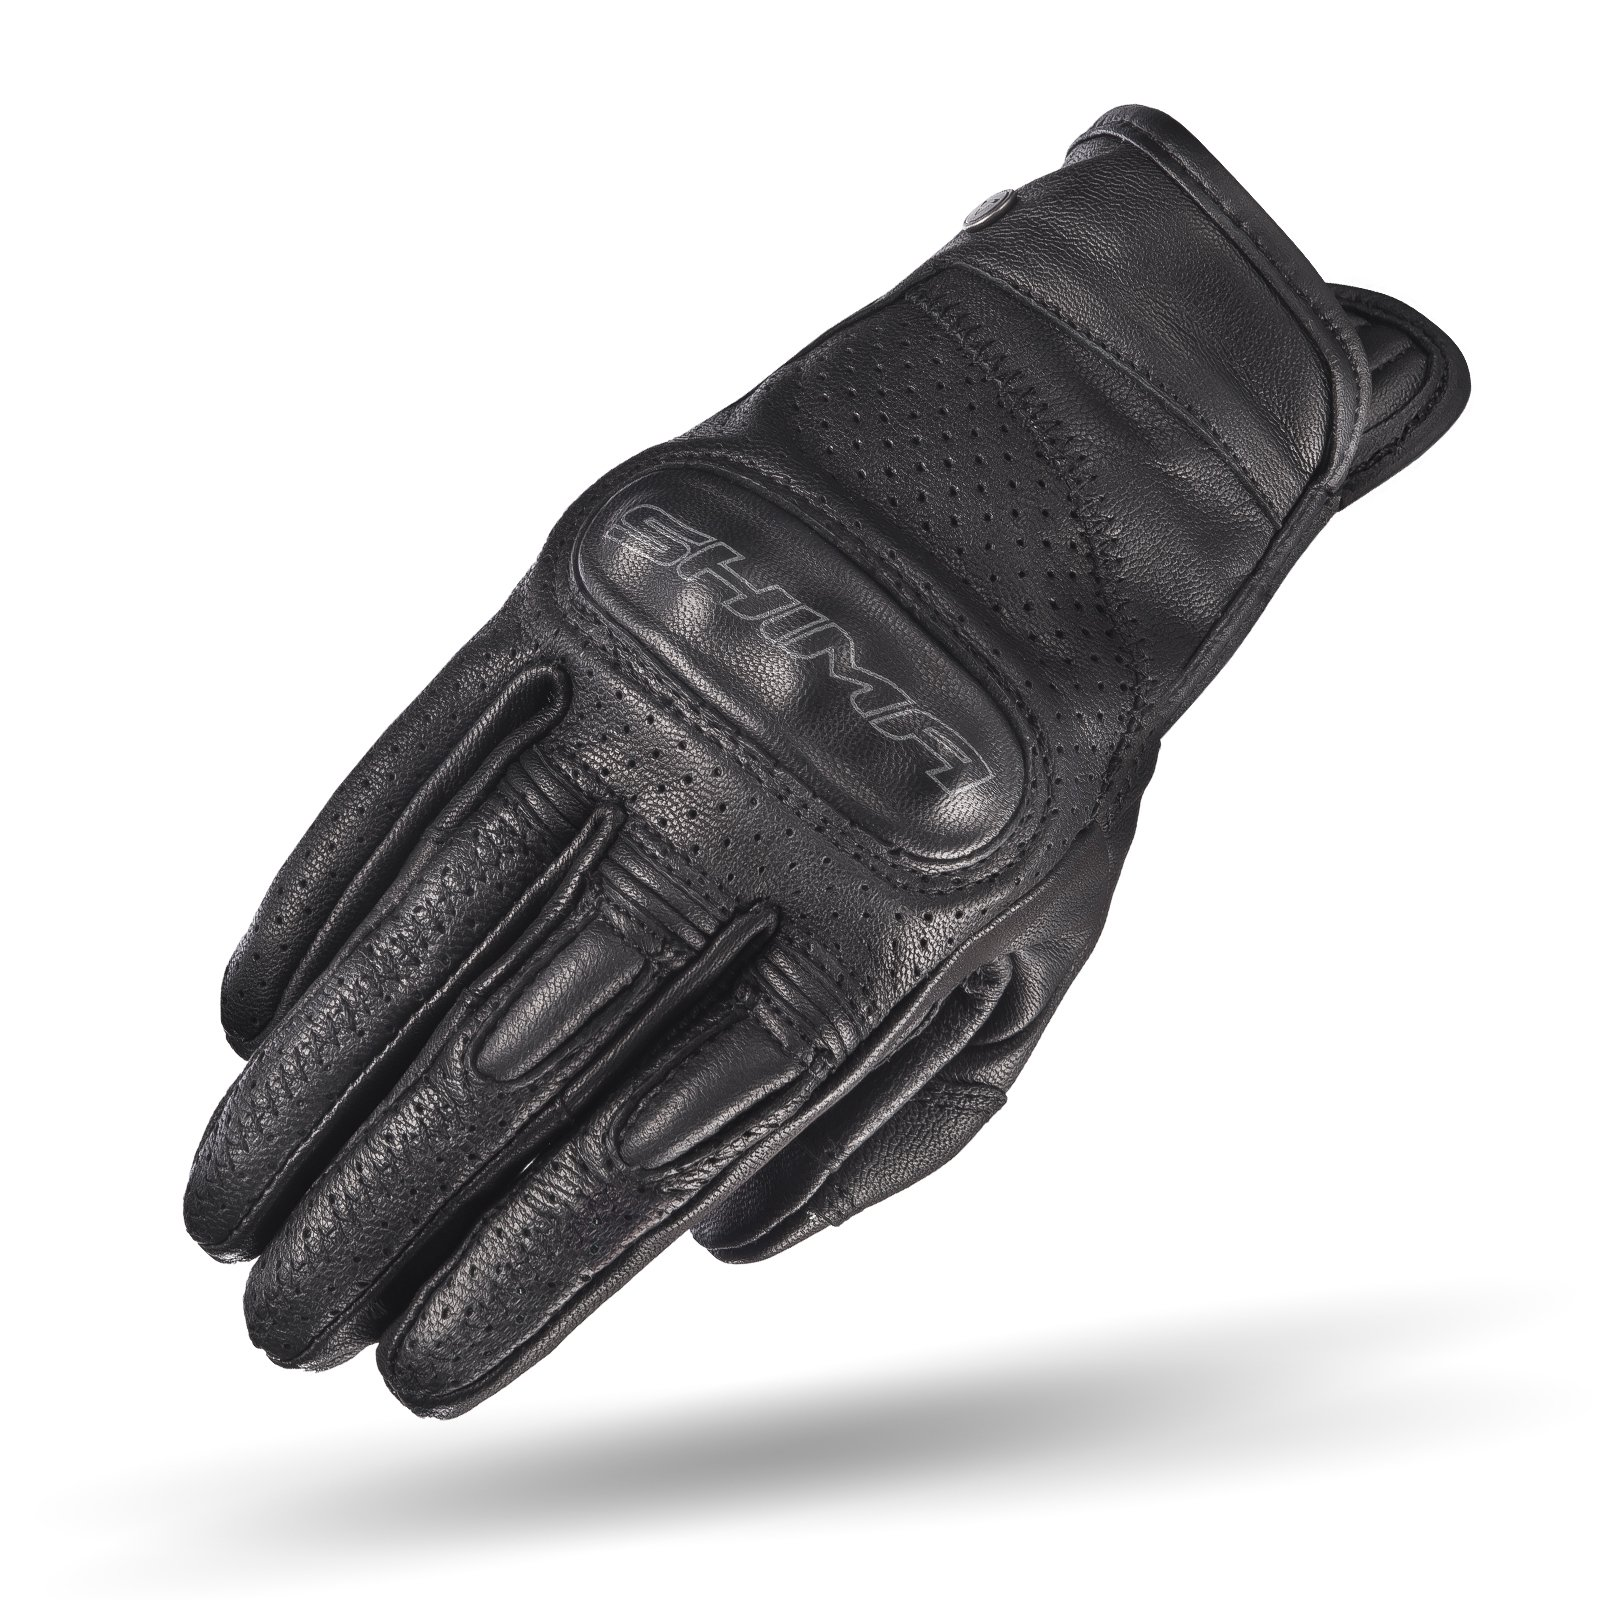 SHIMA CALIBER LADY, Women Retro Vintage Custom Summer Leather Motorcycle Gloves (XS/S/M/L) (M, Black)